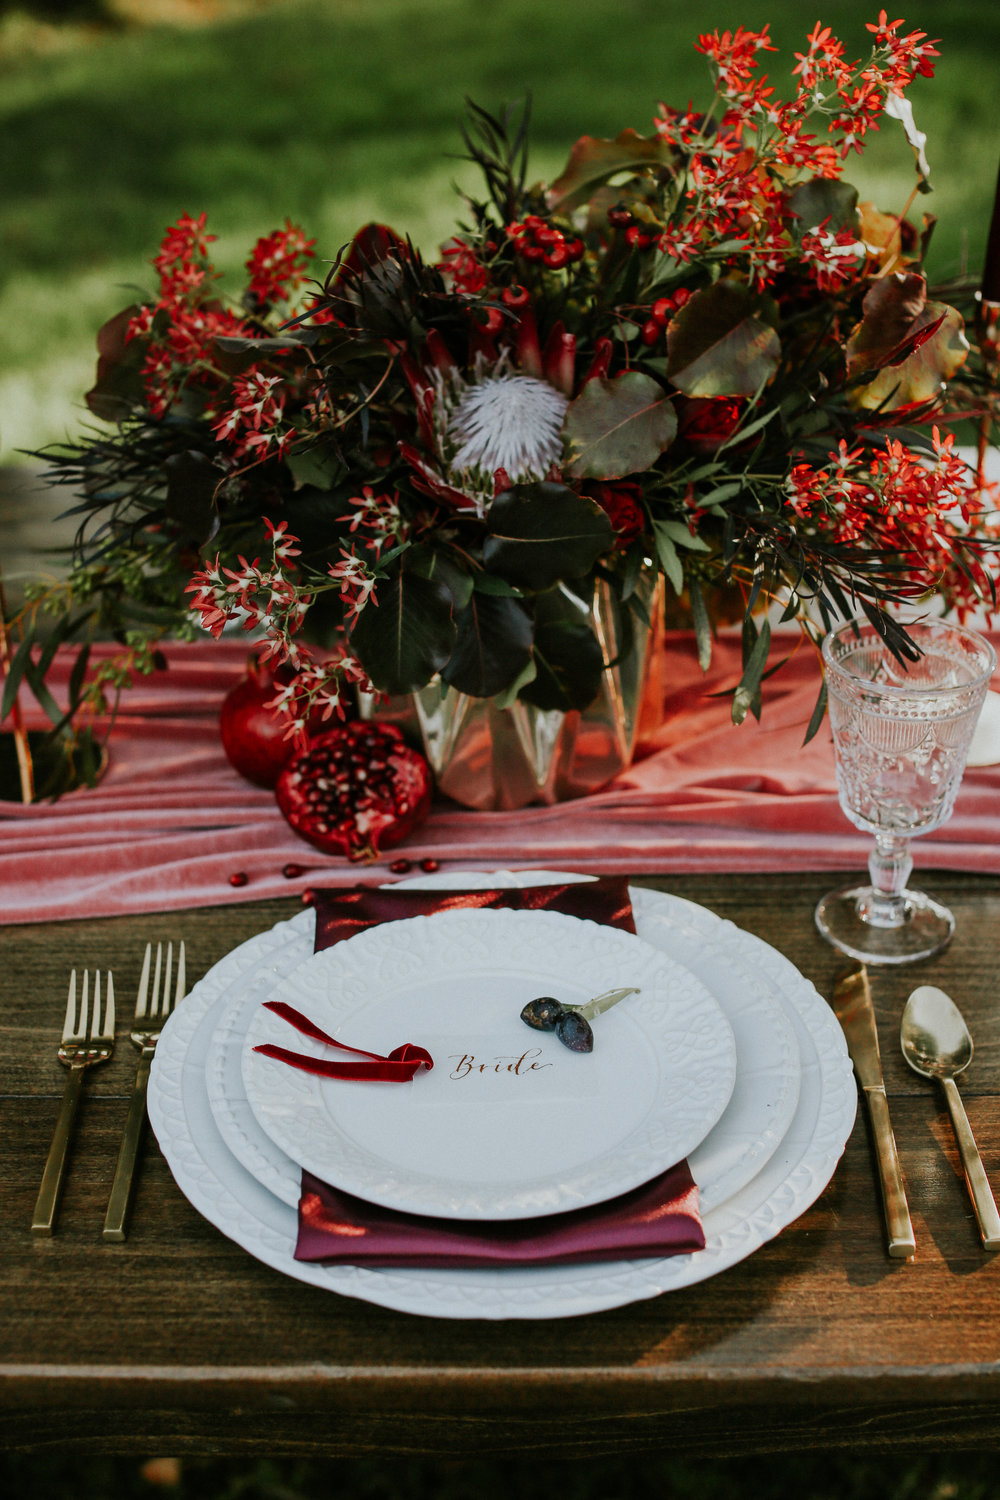 g4-estate-petaluma-wedding-kimberly-macdonald-photography-144.jpg